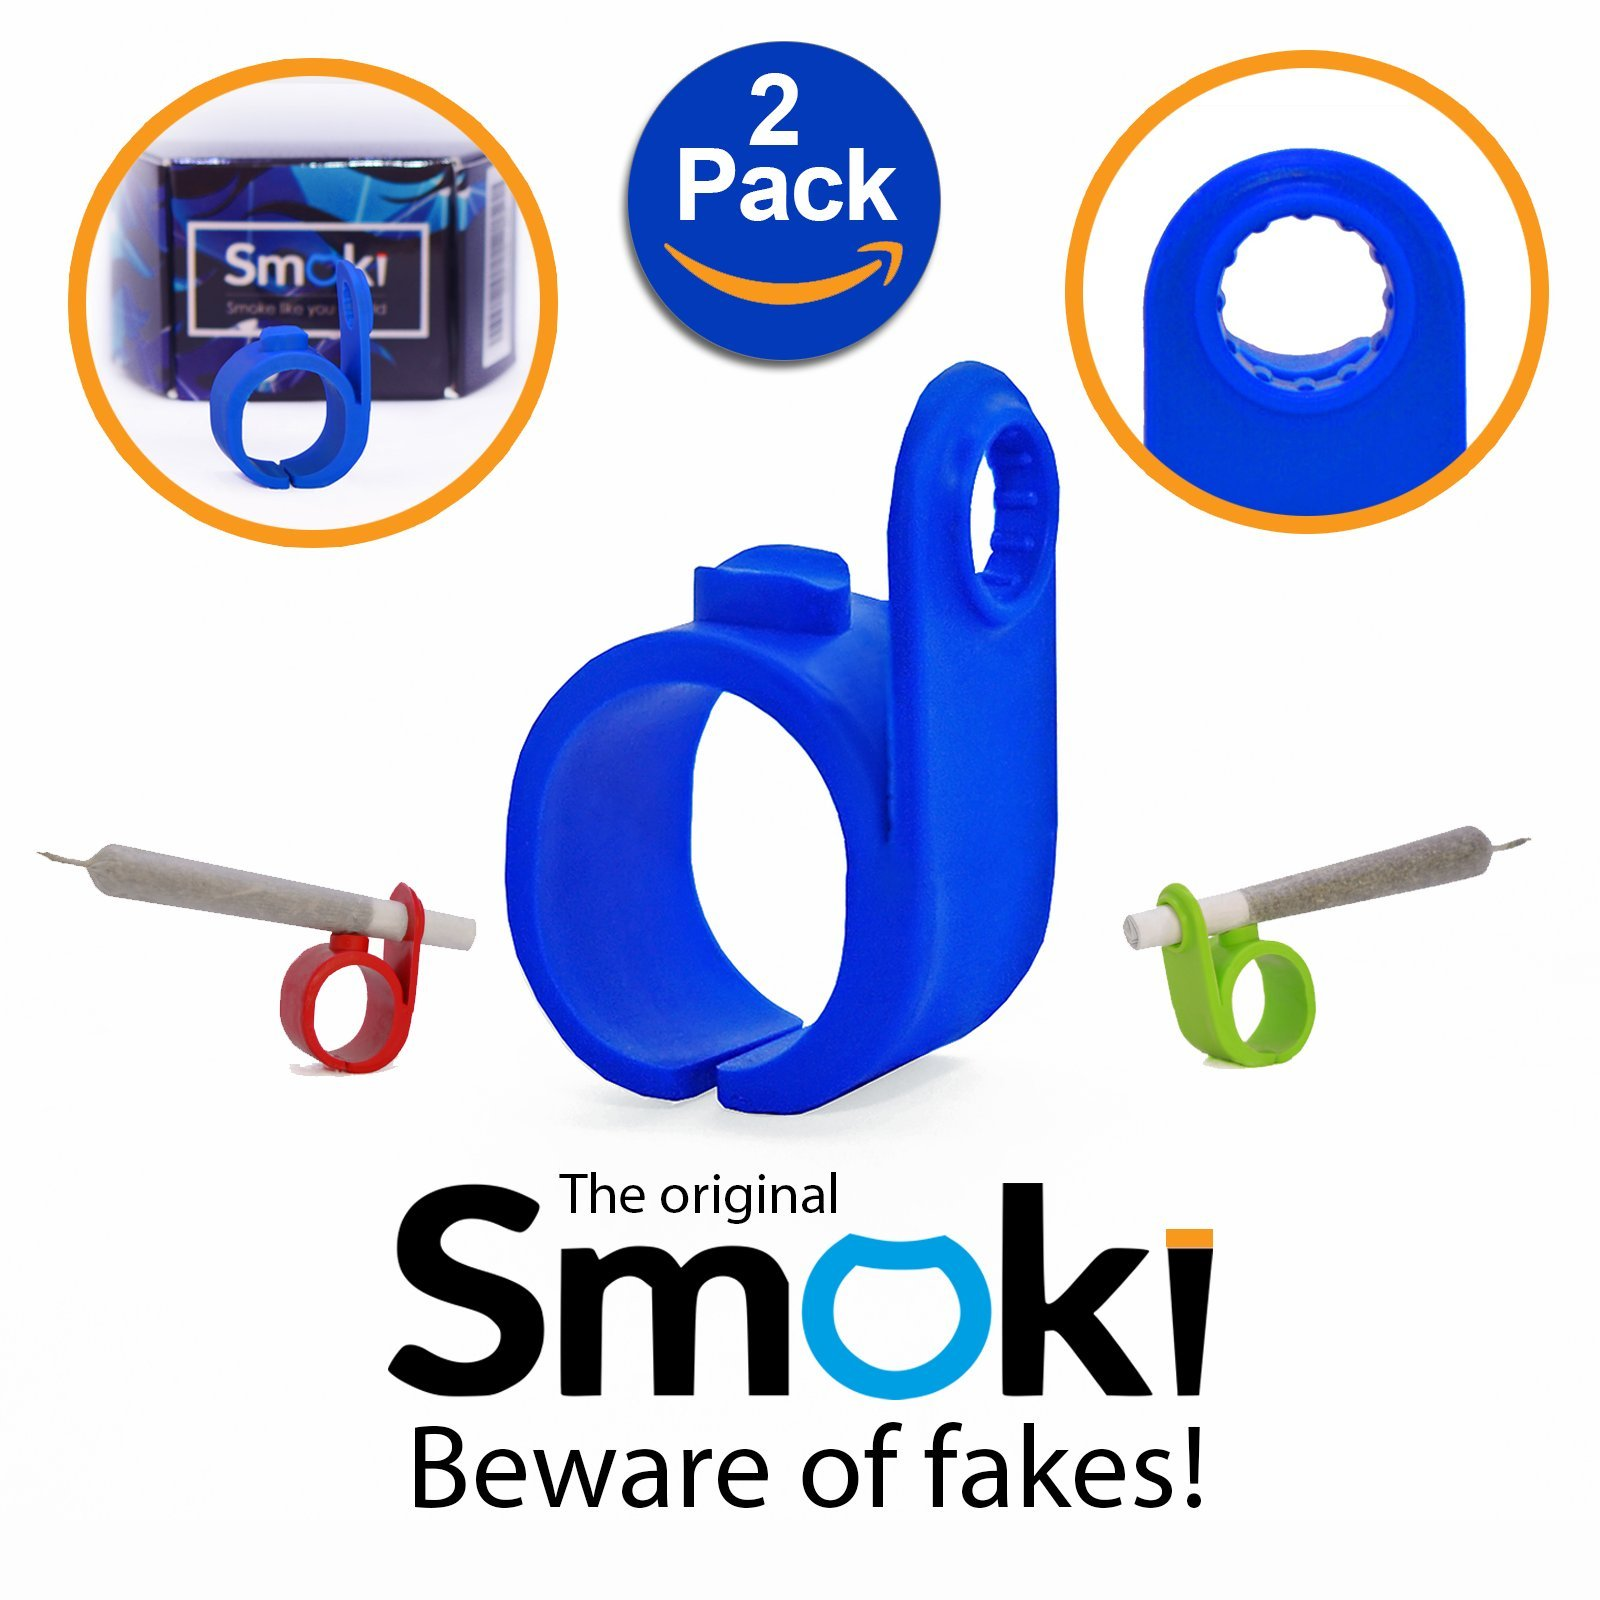 Smoki Roll Holder Ring 2 Pack | Flexible & Comfy Silicone, Ergonomic Design, Heat & Shock Proof Hands Free Rings | Protect Your Hands, Prevent Yellow Stains, Minimize Smell & Enjoy (Red&Blue)